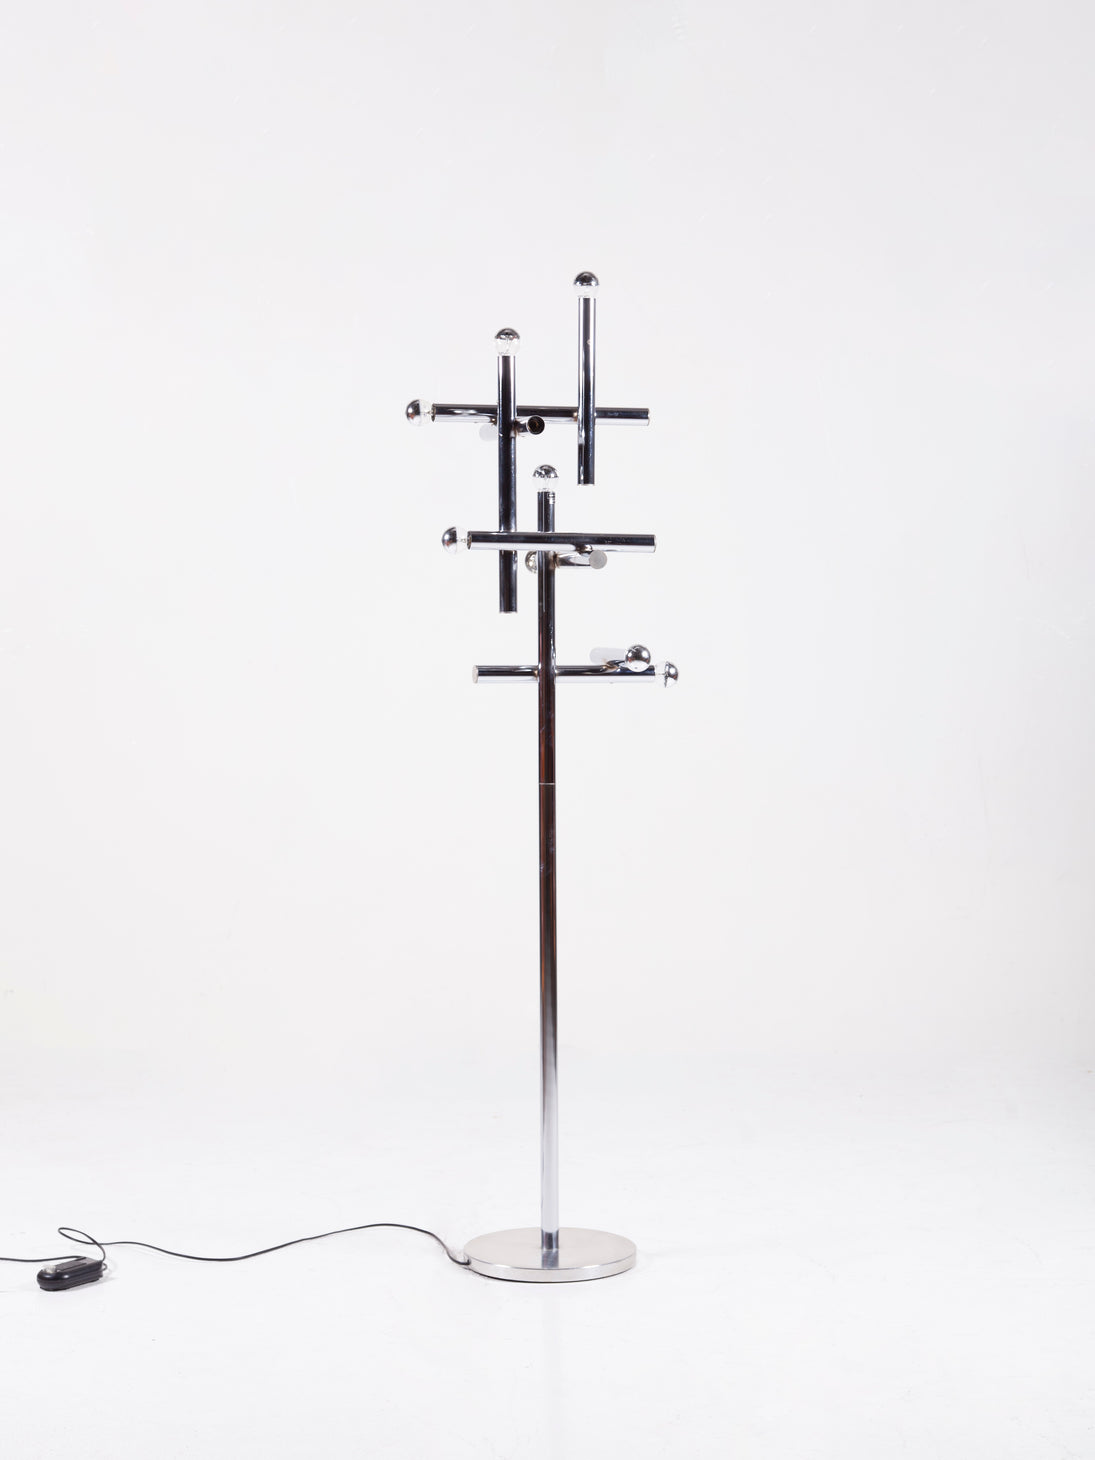 Geometric Vintage floor lamp by Temde Leuchten